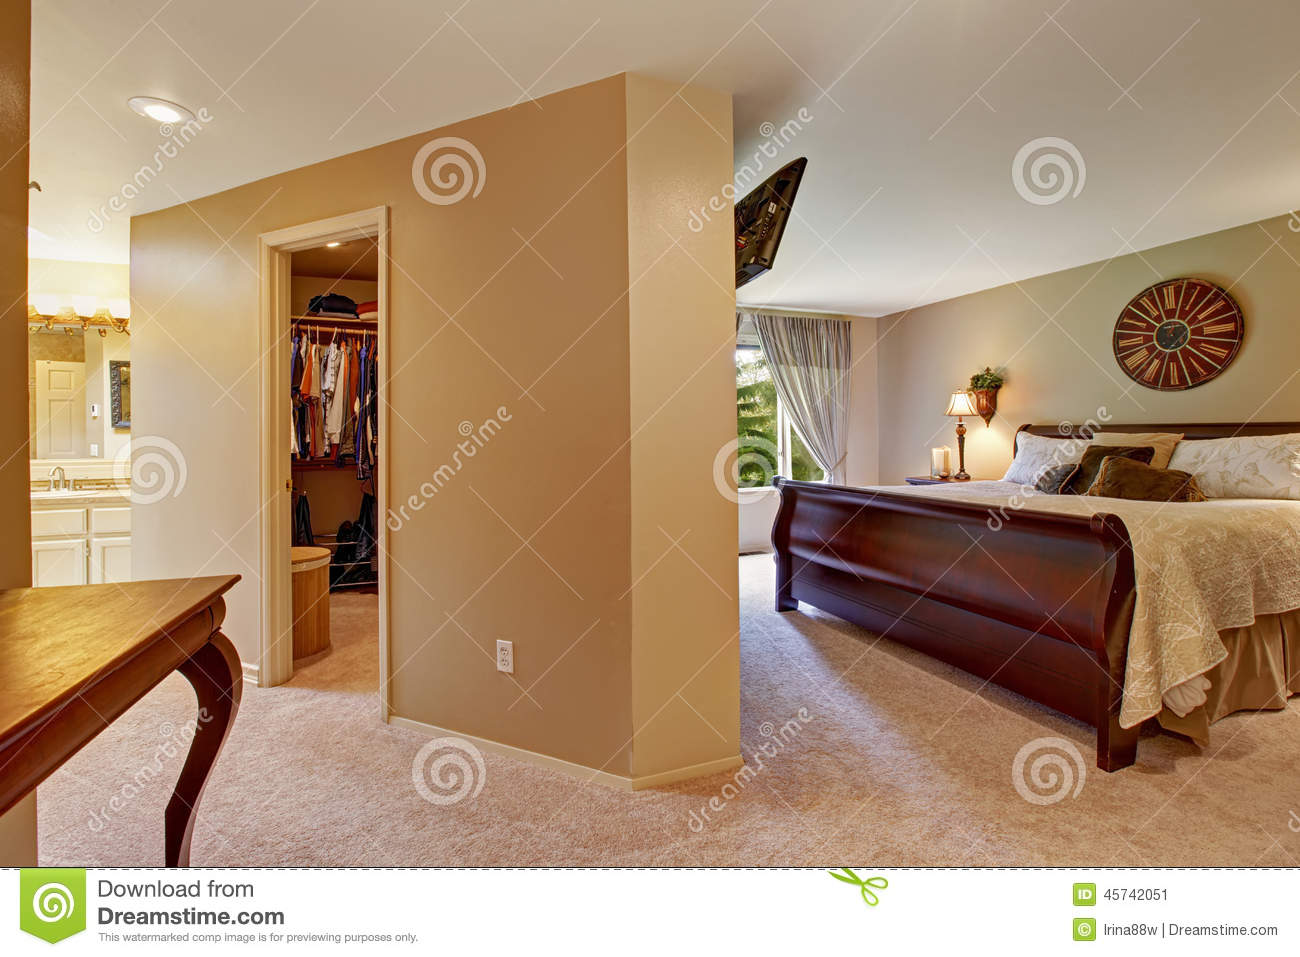 spacious bedroom interior with walk in closet stock image - image of